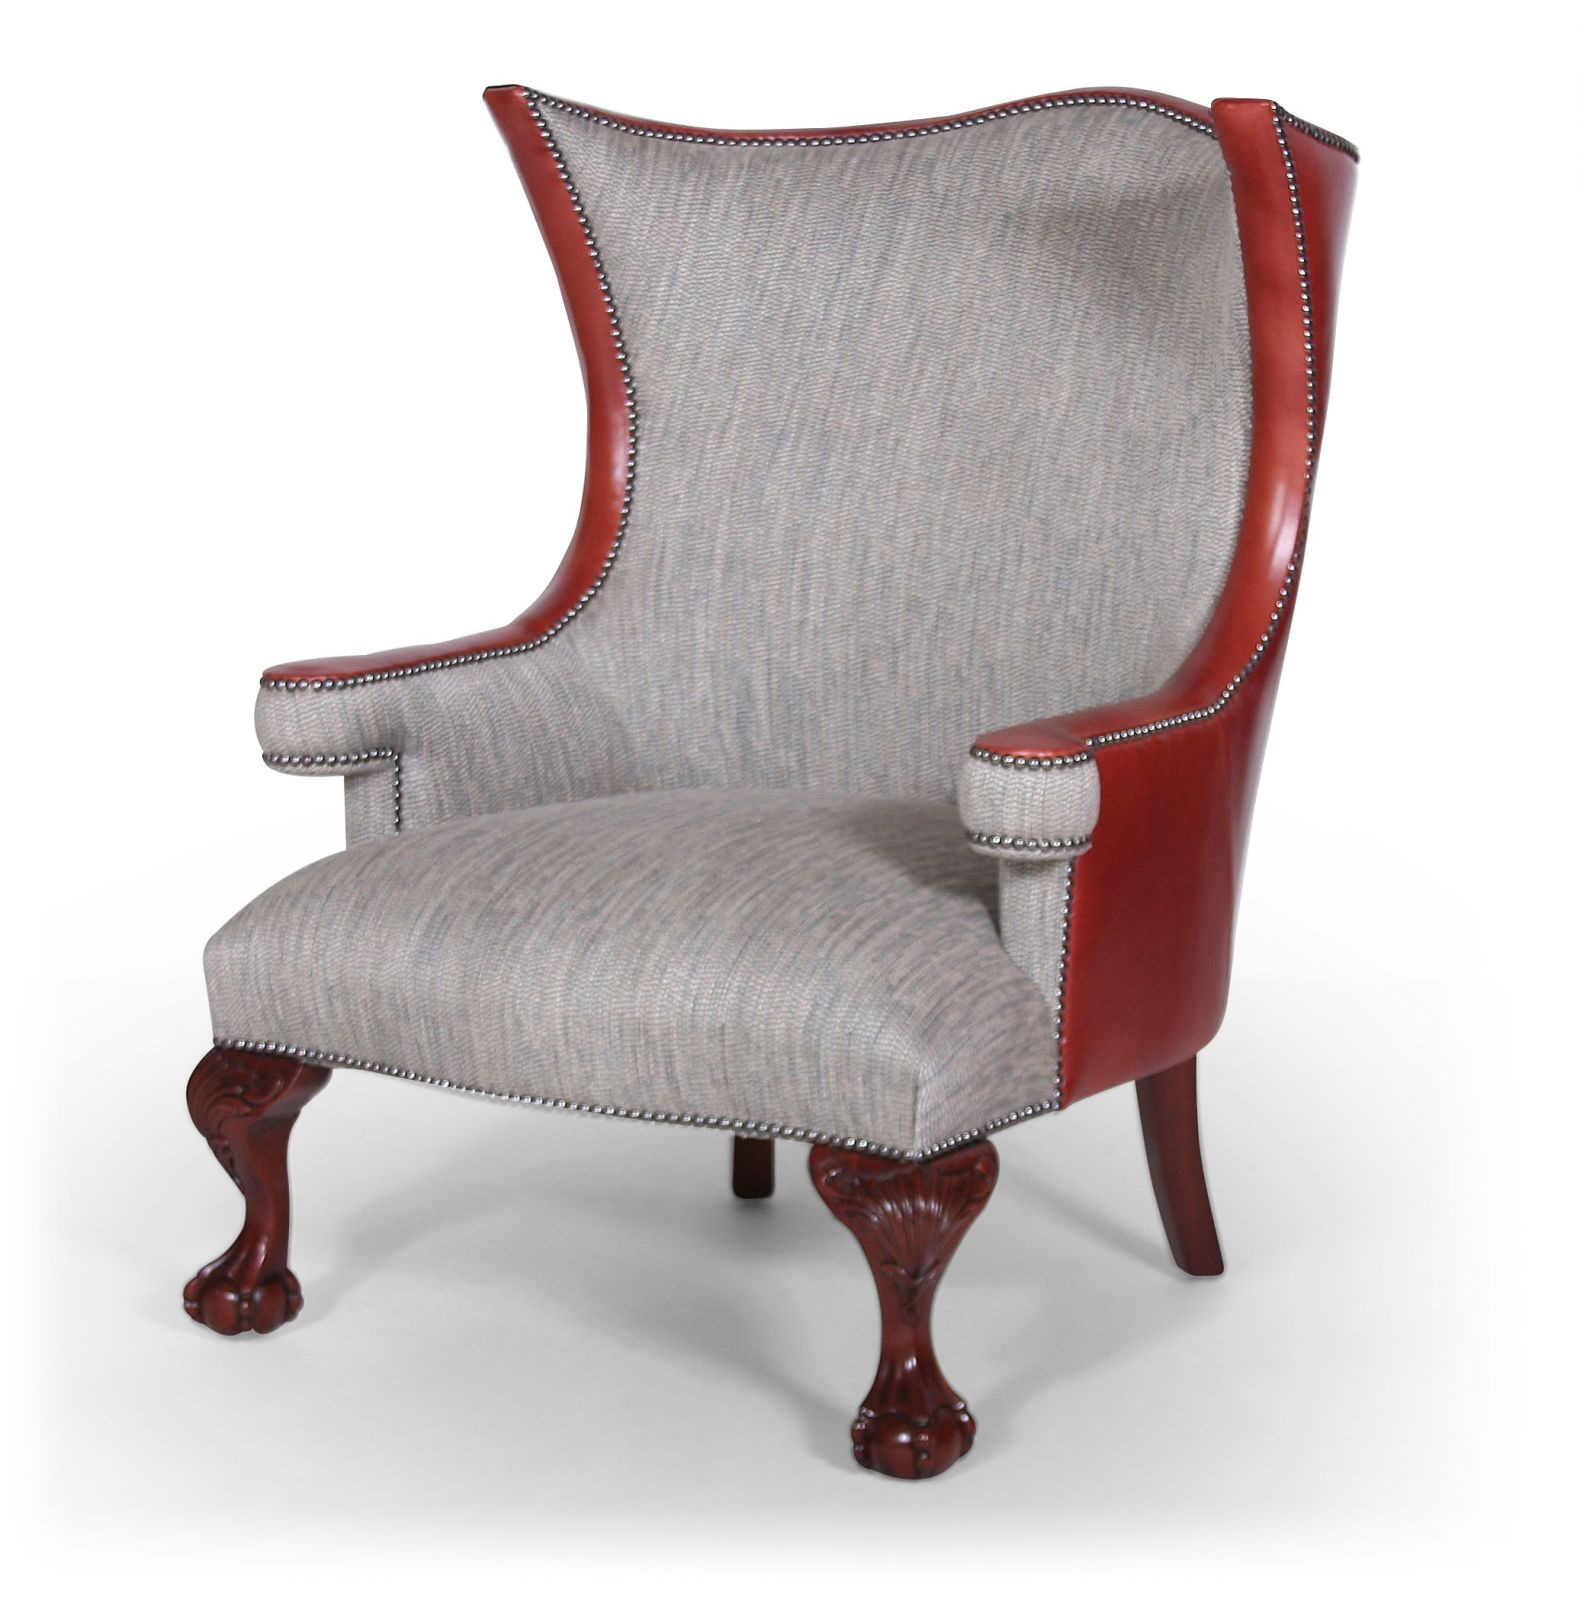 Okeford wing chair in fabric and leather